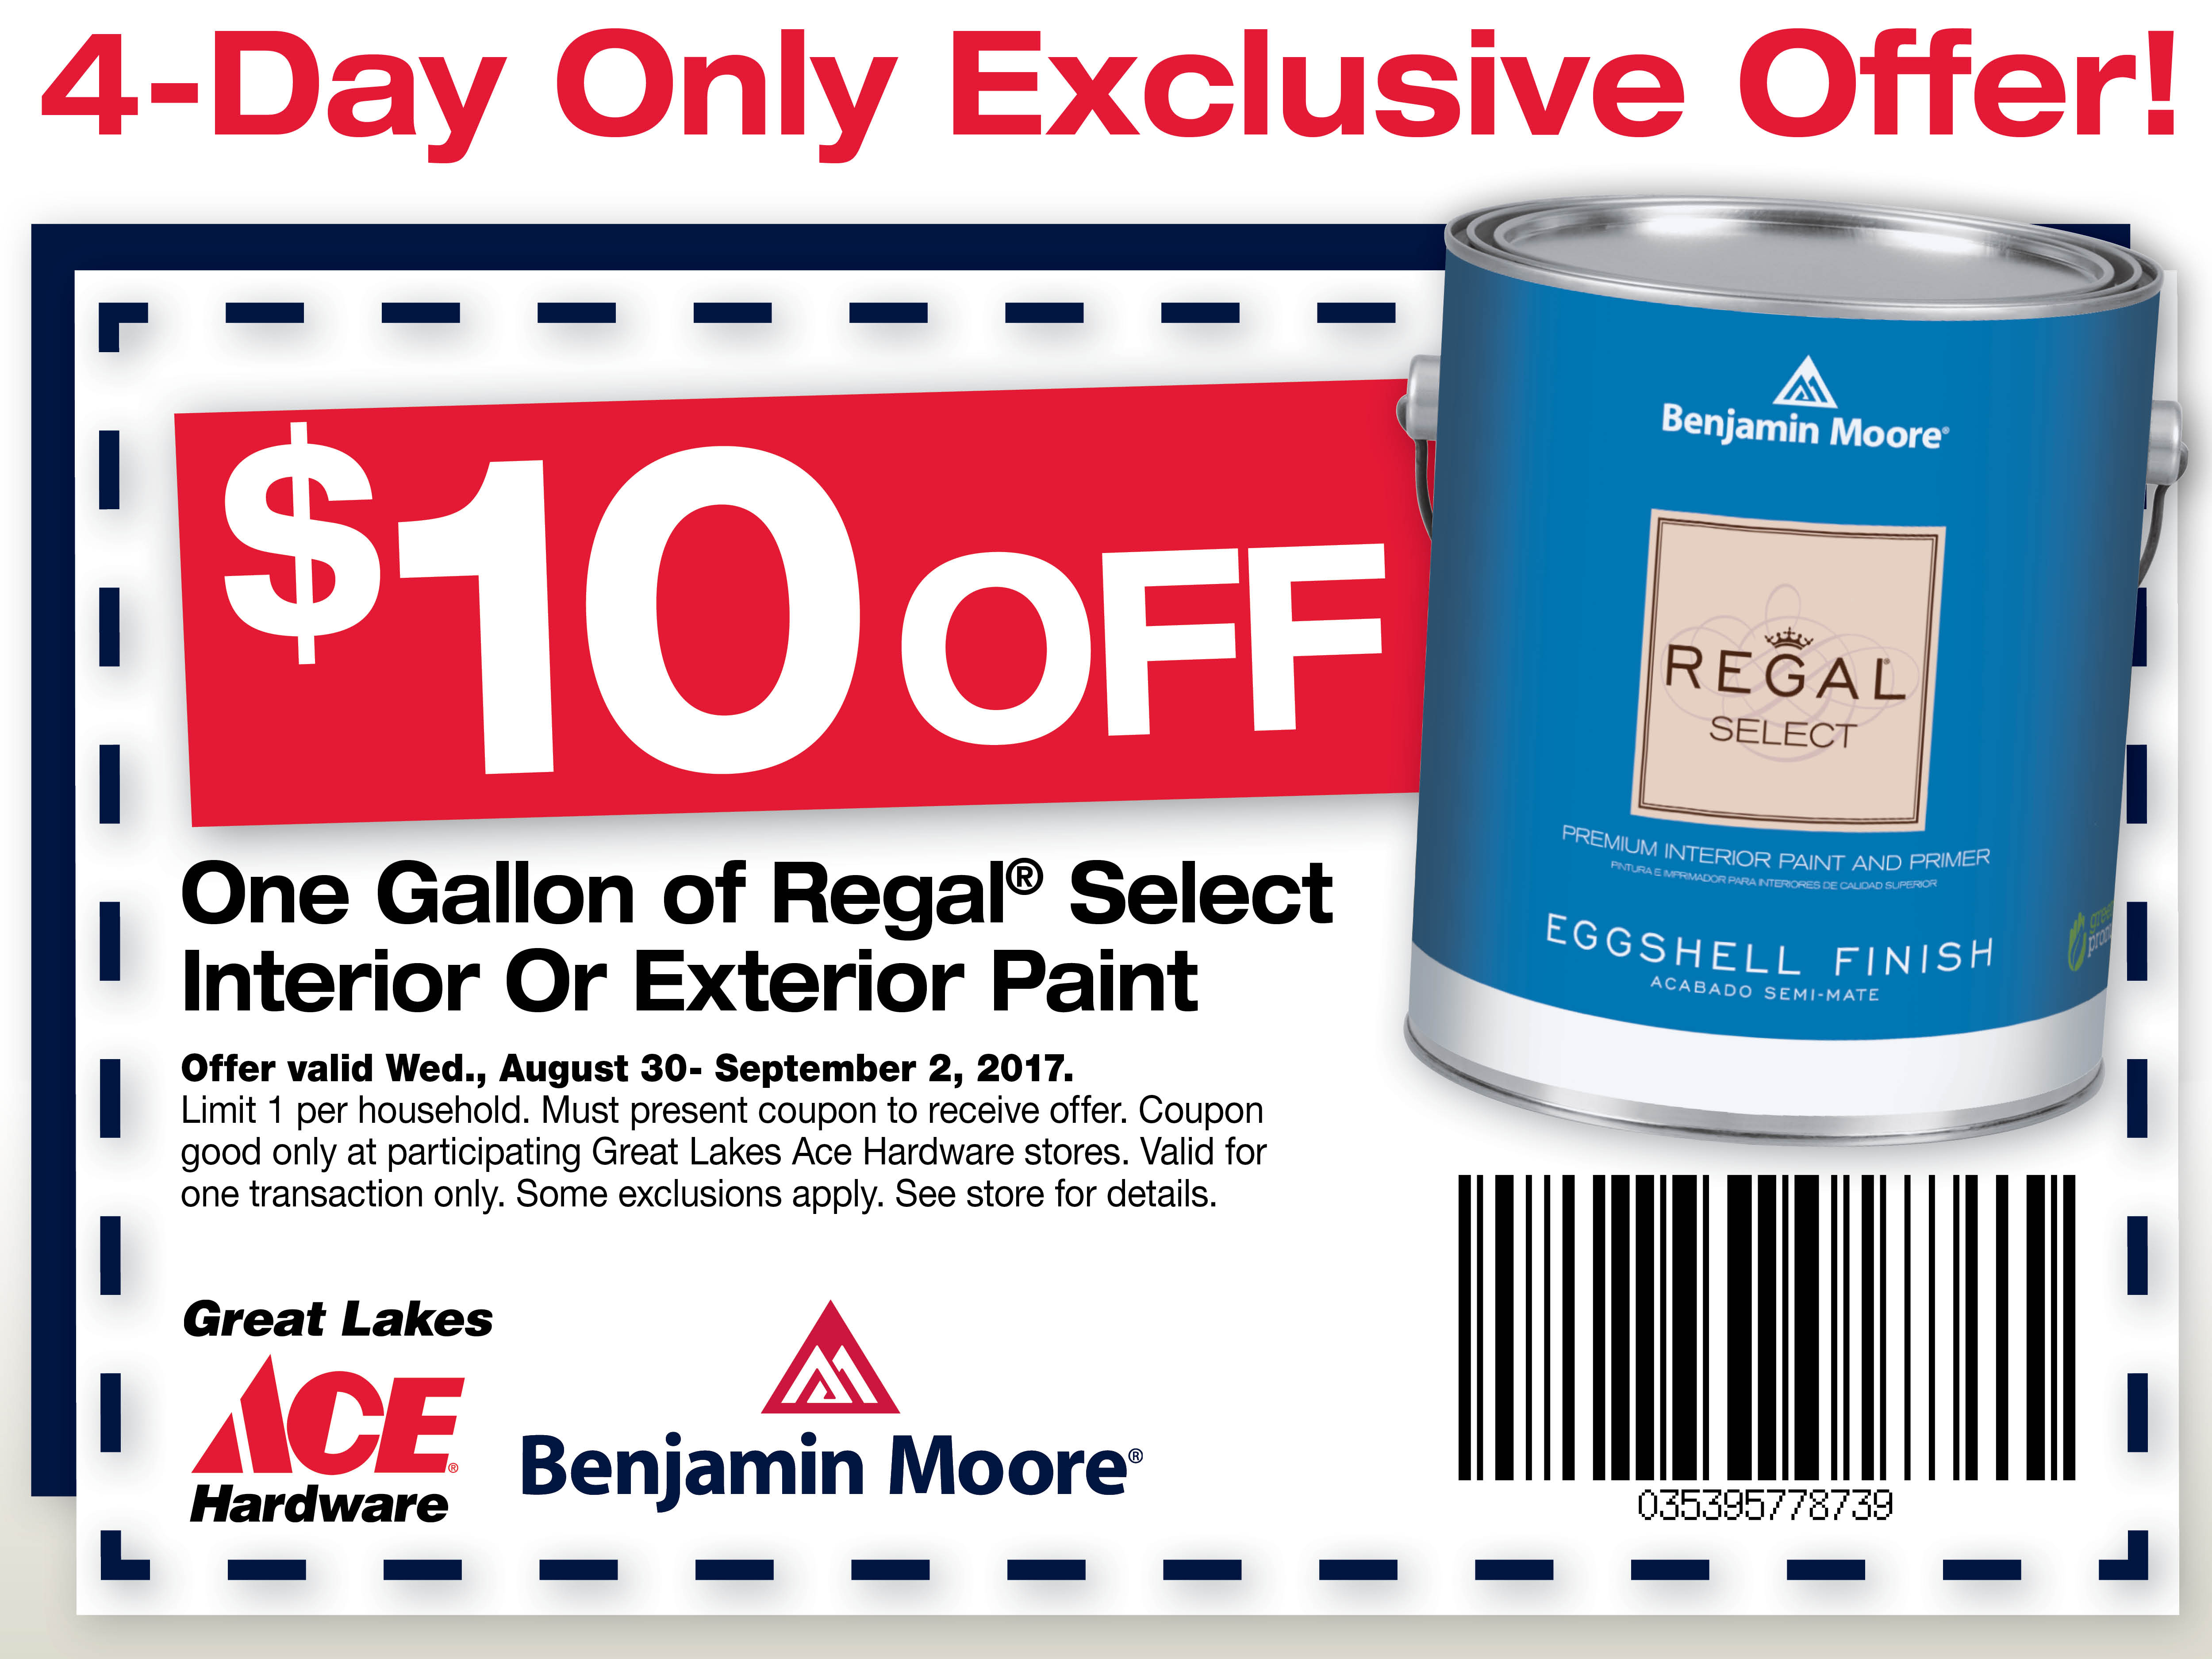 Save $10 on Benjamin Moore Paint